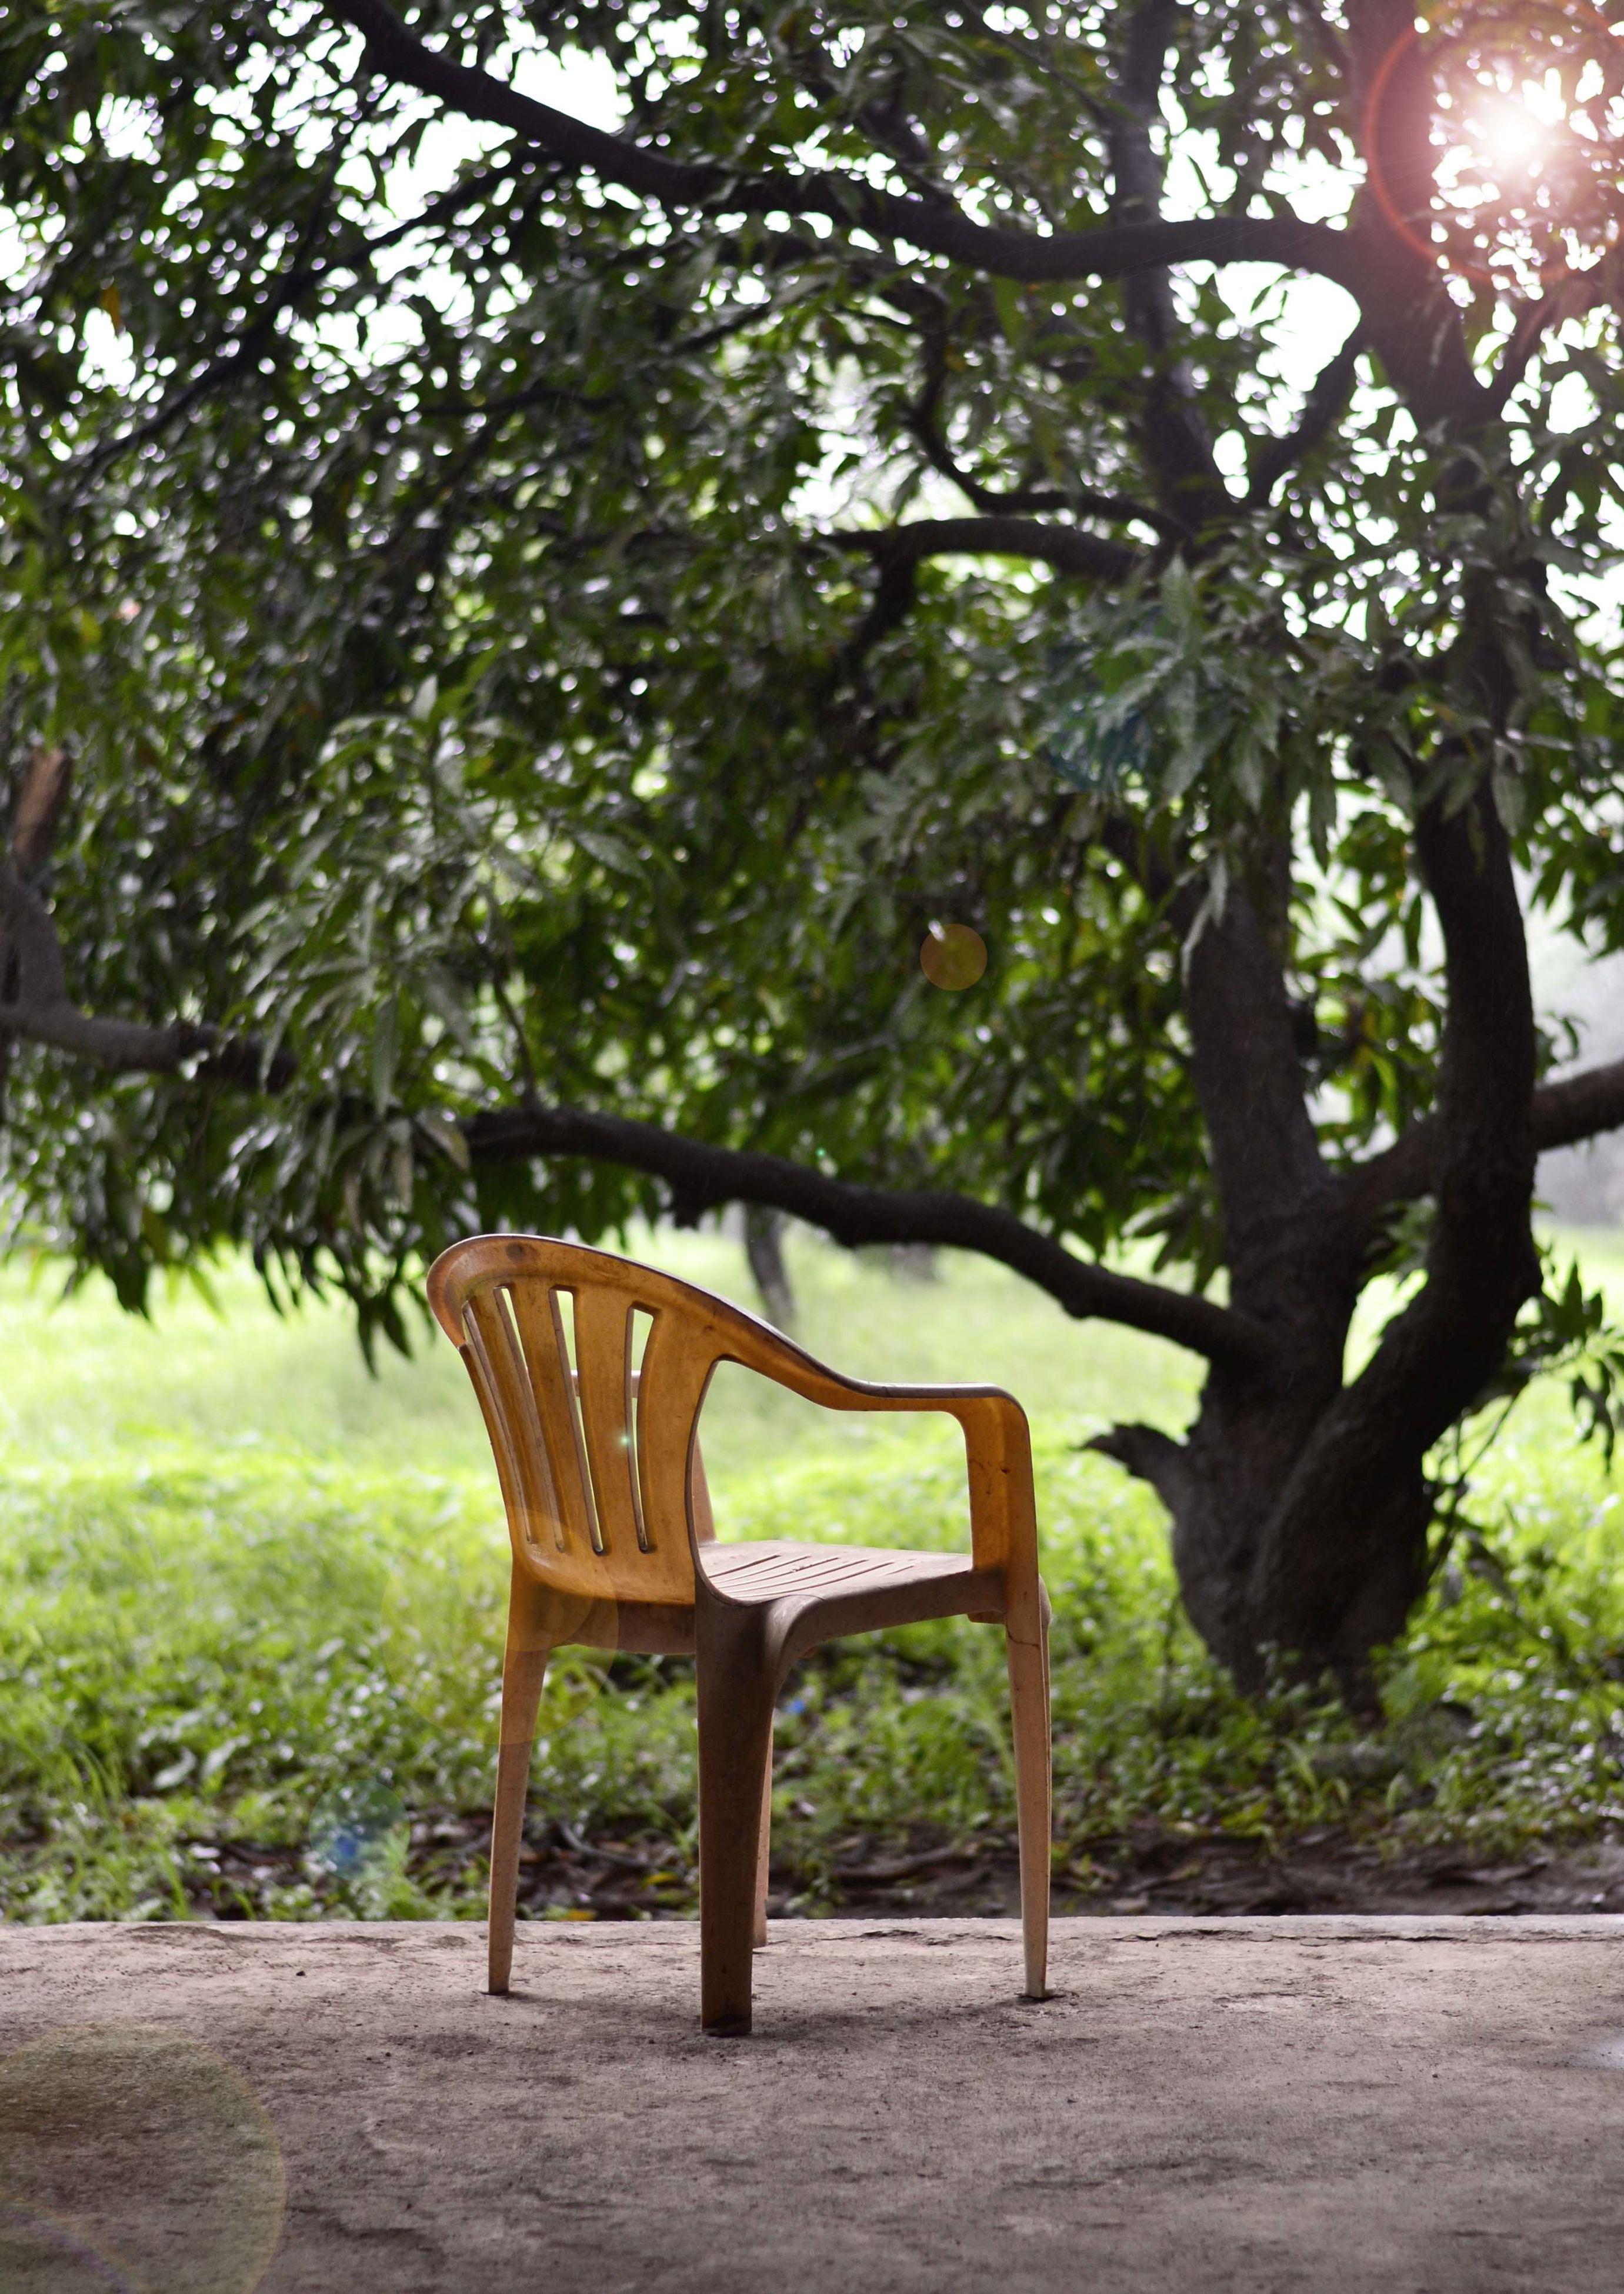 tree, bench, absence, chair, growth, park - man made space, empty, branch, built structure, tranquility, sunlight, seat, tree trunk, nature, day, no people, outdoors, park bench, architecture, green color